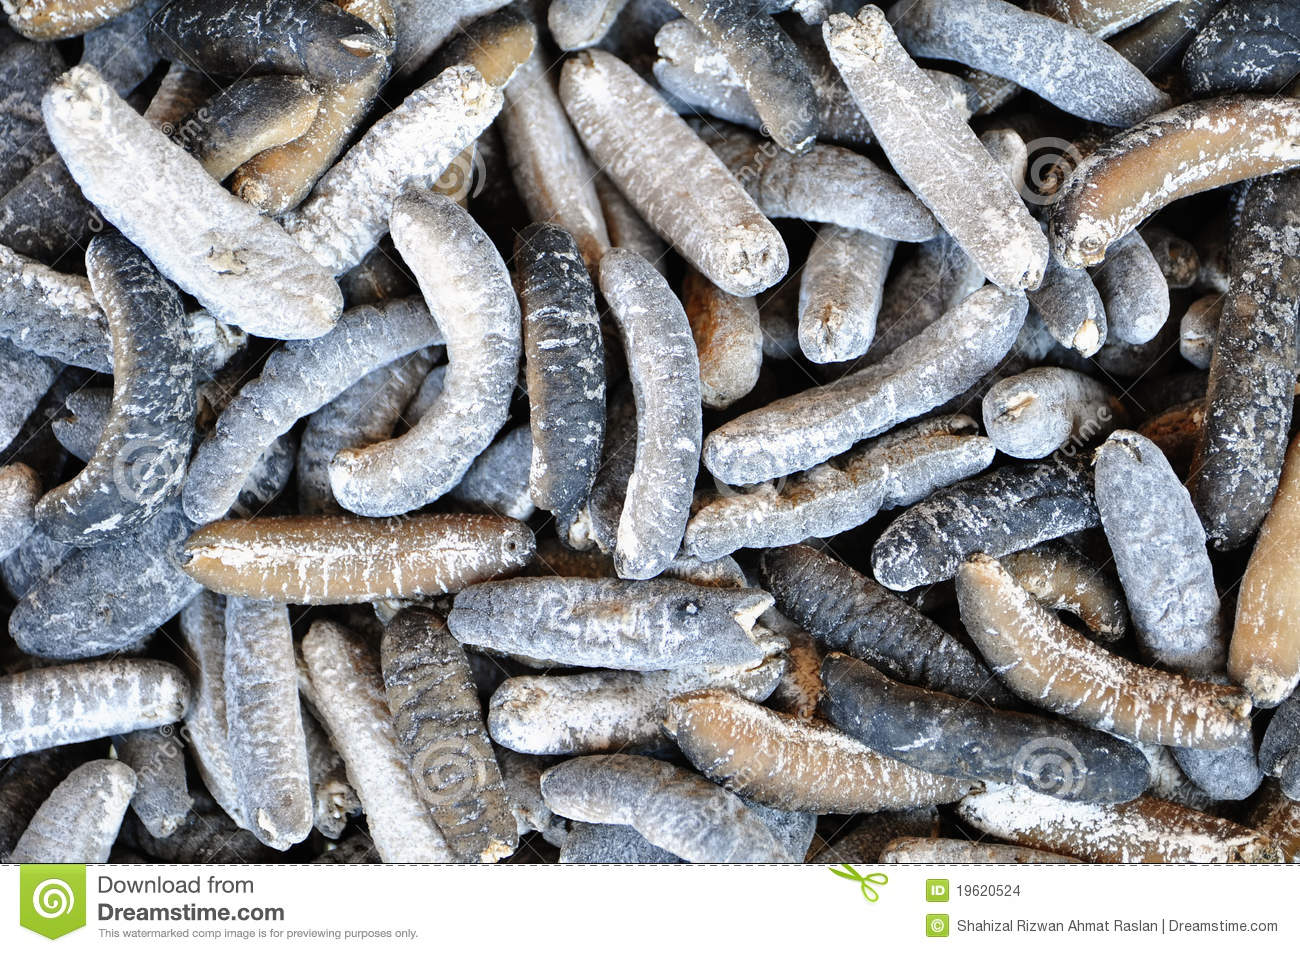 dried sea cucumbers